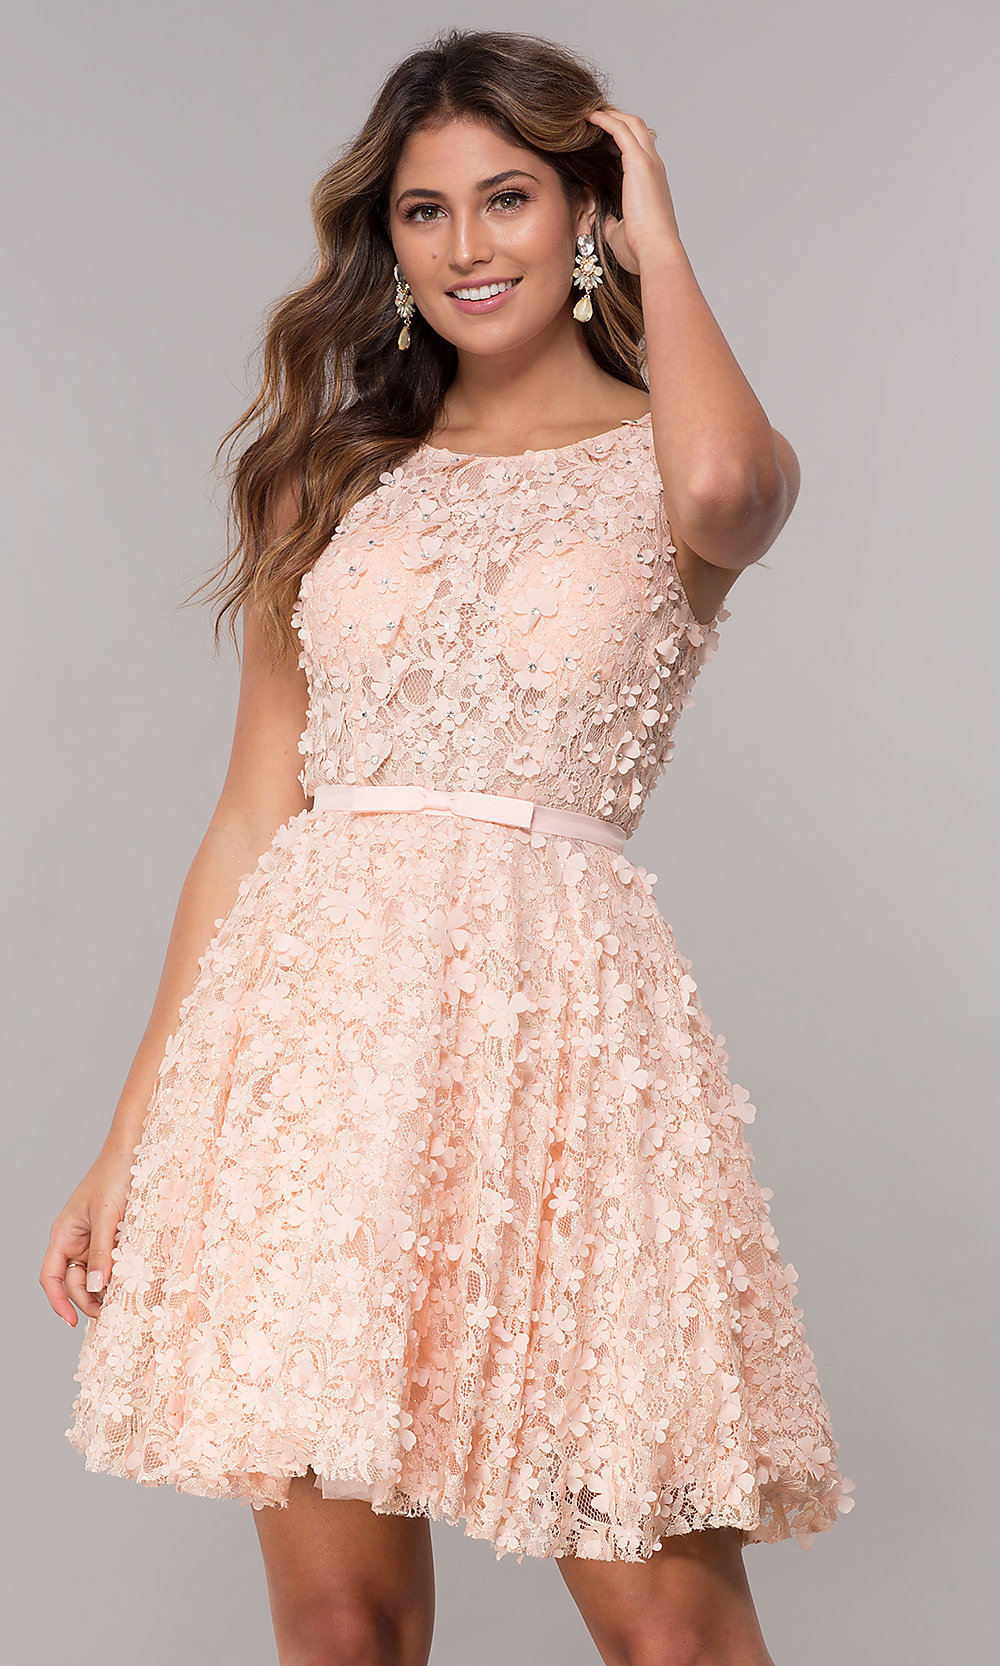 Homecoming Dress with 3-D Floral Applique - PromGirl d110e41ef